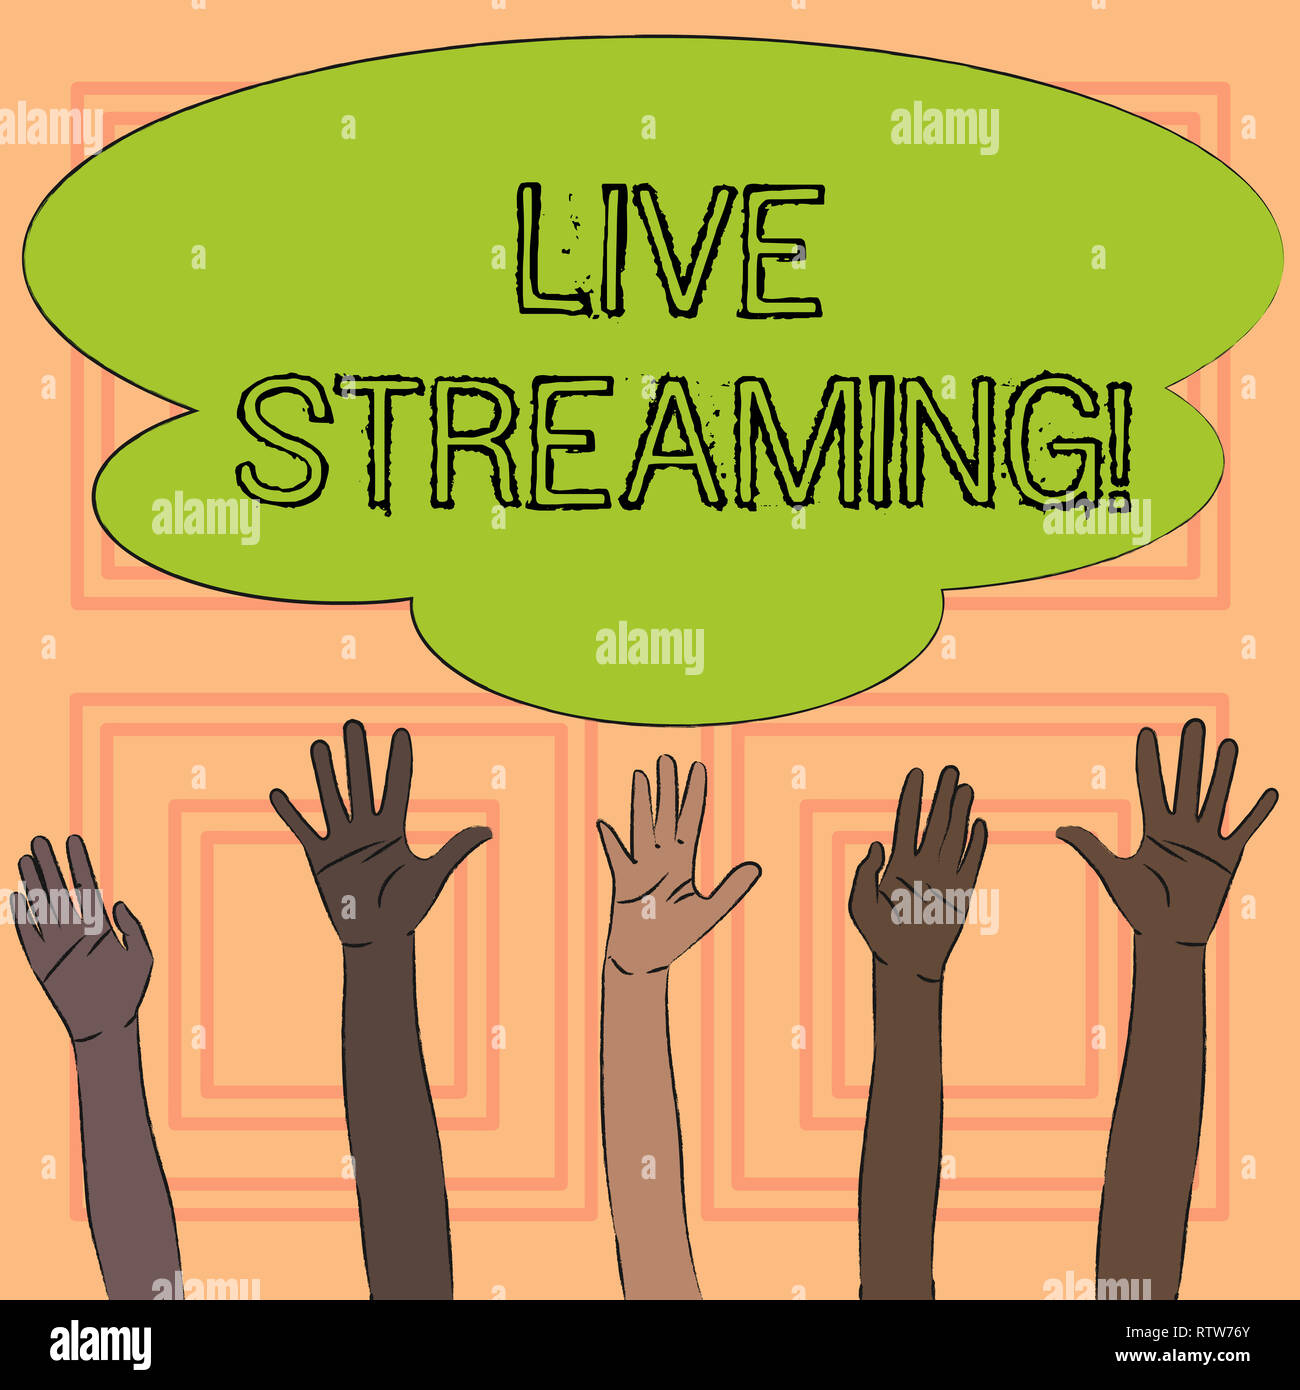 Warriors Live Stream Free Mobile: Realtime Stock Photos & Realtime Stock Images